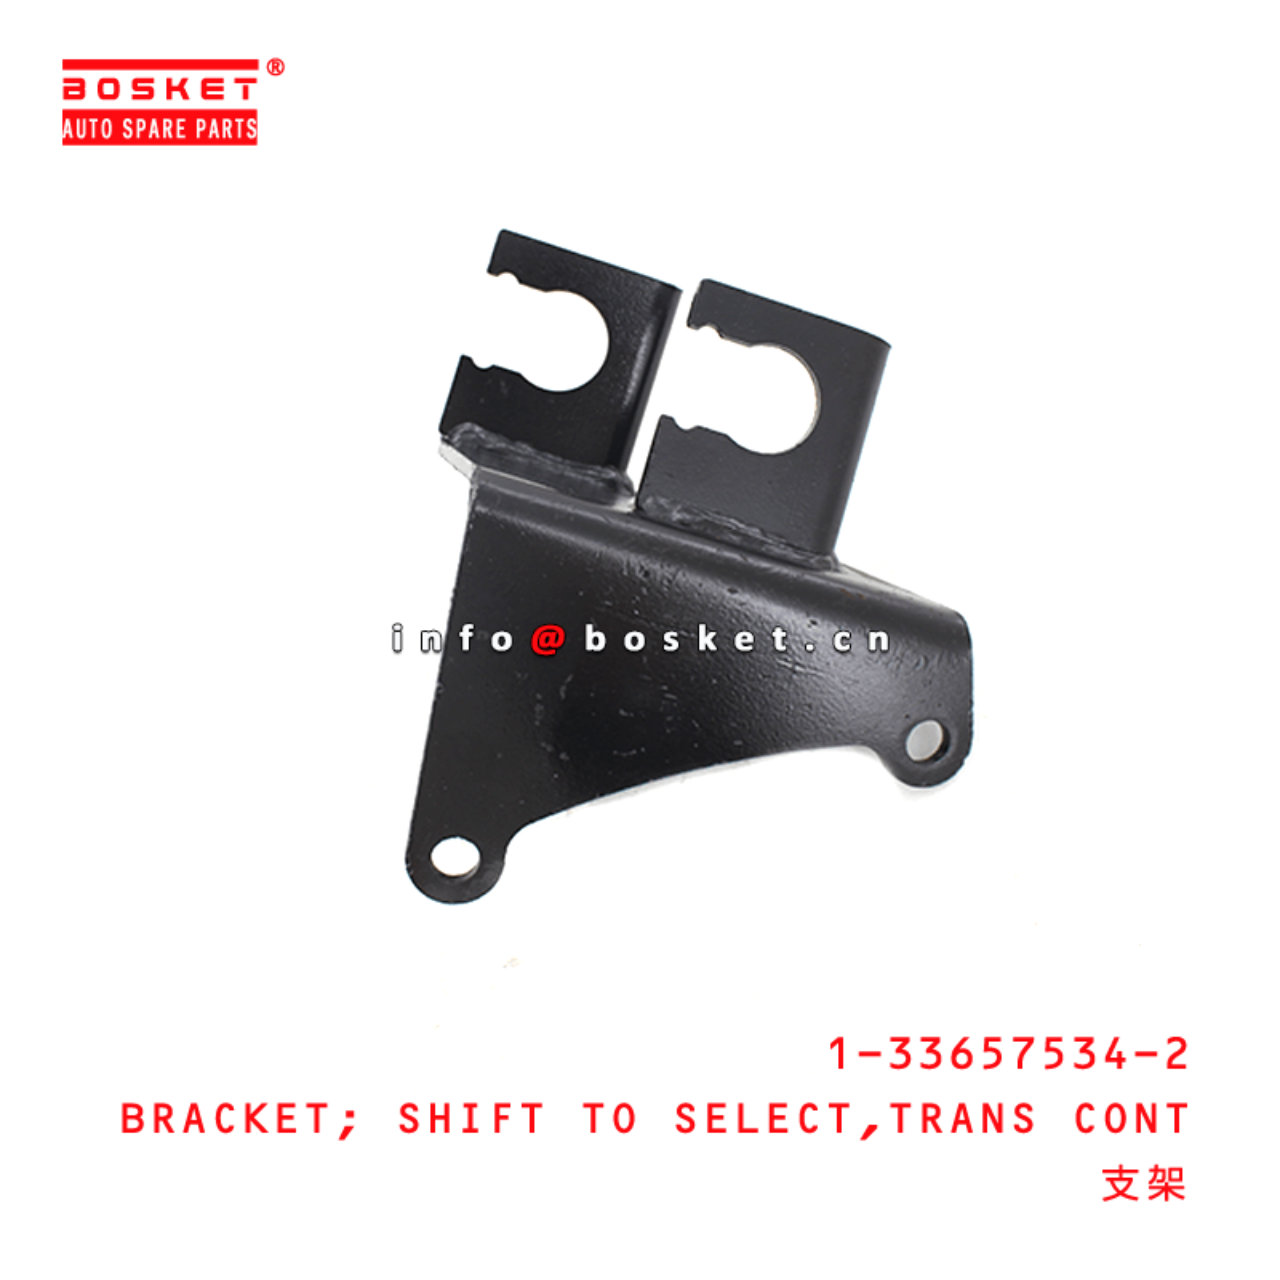 1-33657534-2 Transmission Control Shift To Select Bracket 1336575342 Suitable for ISUZU FSR FTR